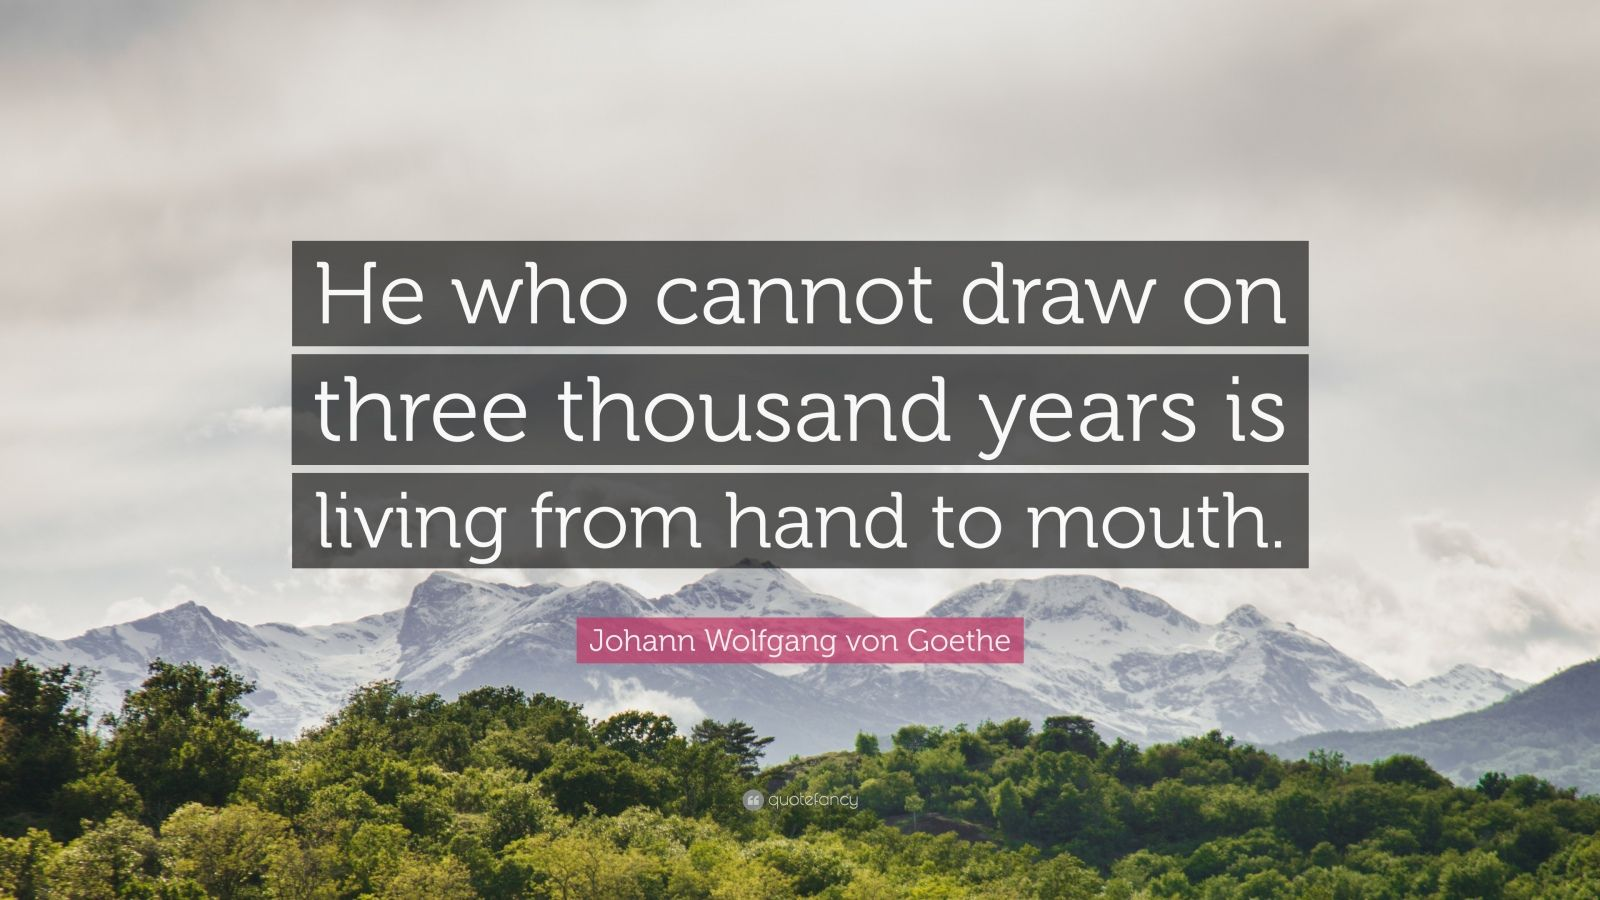 """Johann Wolfgang von Goethe Quote: """"He who cannot draw on three thousand years is living from hand to mouth."""""""